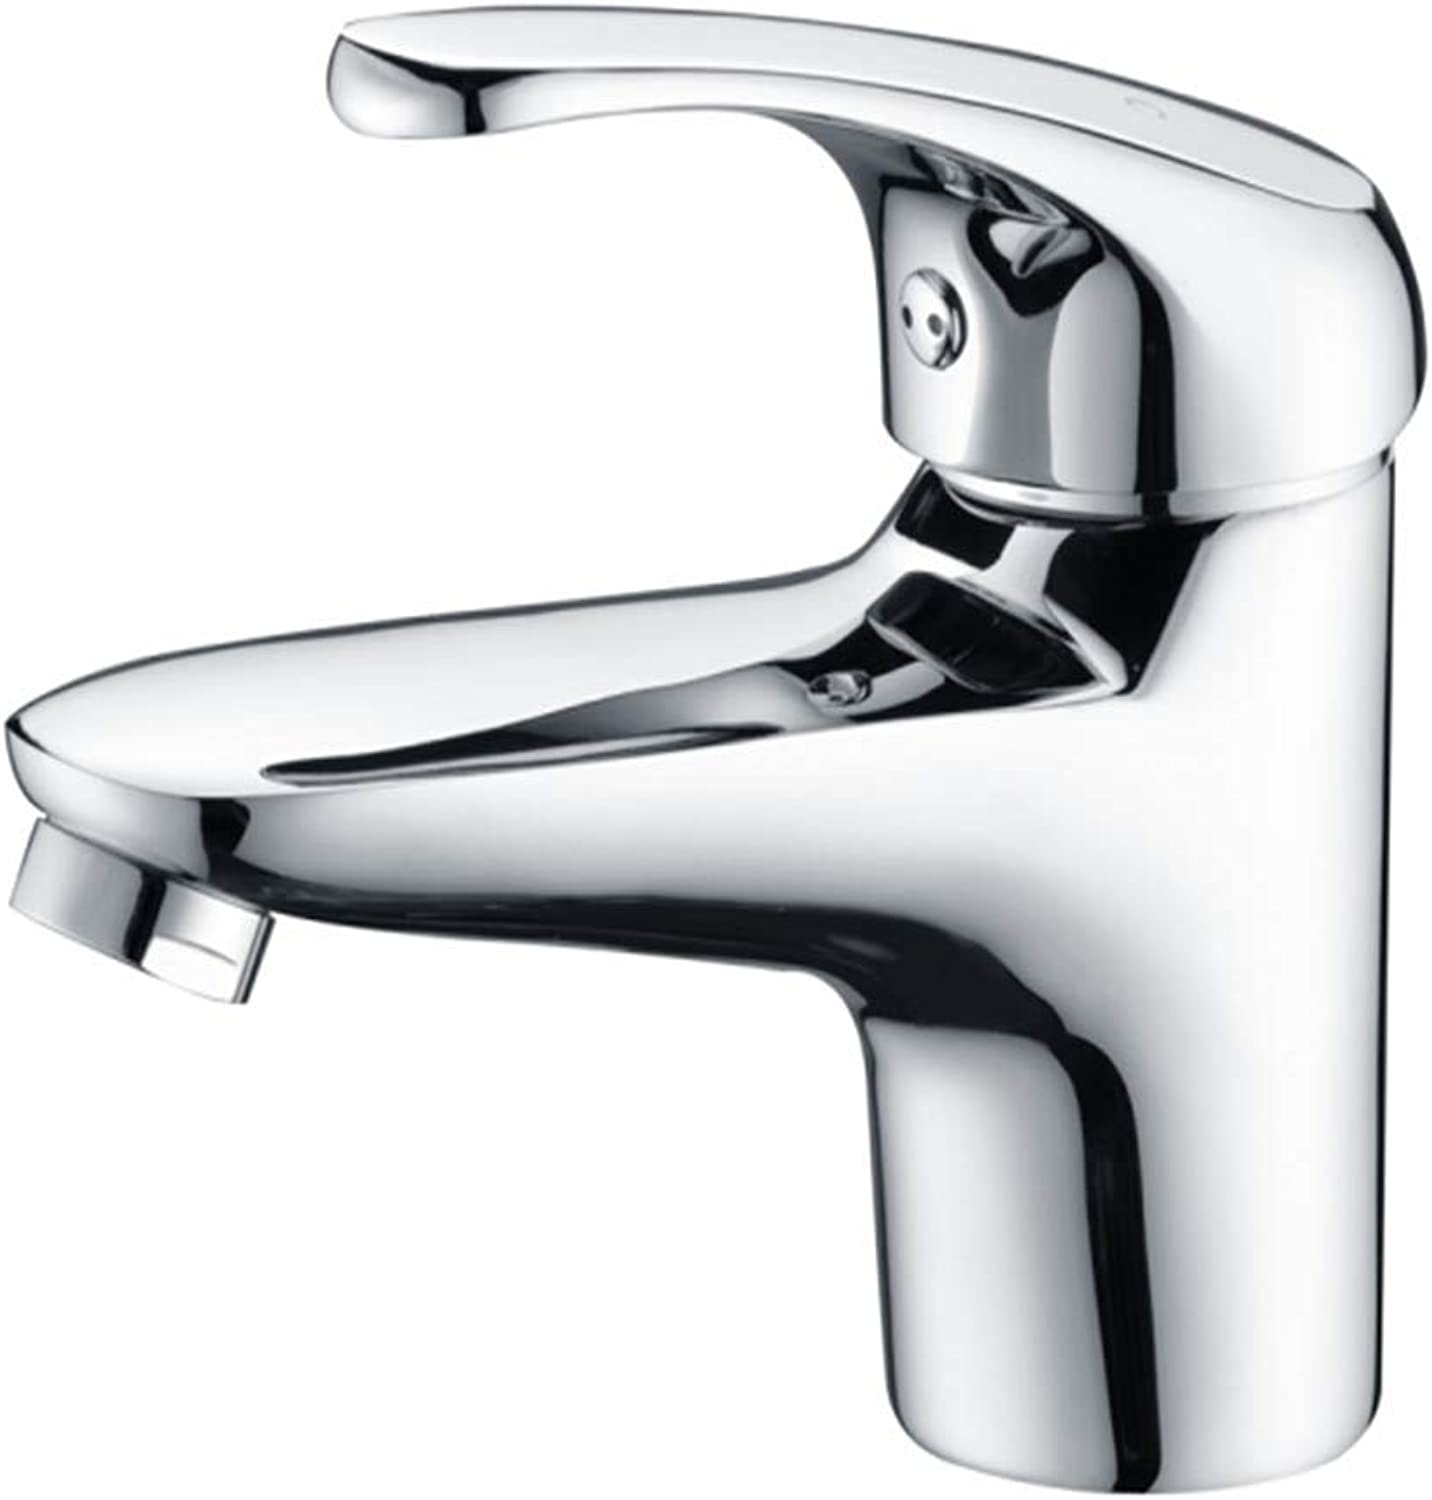 Kitchen Taps Faucet Modern Kitchen Sink Taps Stainless Steelbathroom Basin Faucet Copper Hot and Cold Water Sink Nozzle Sink Faucet